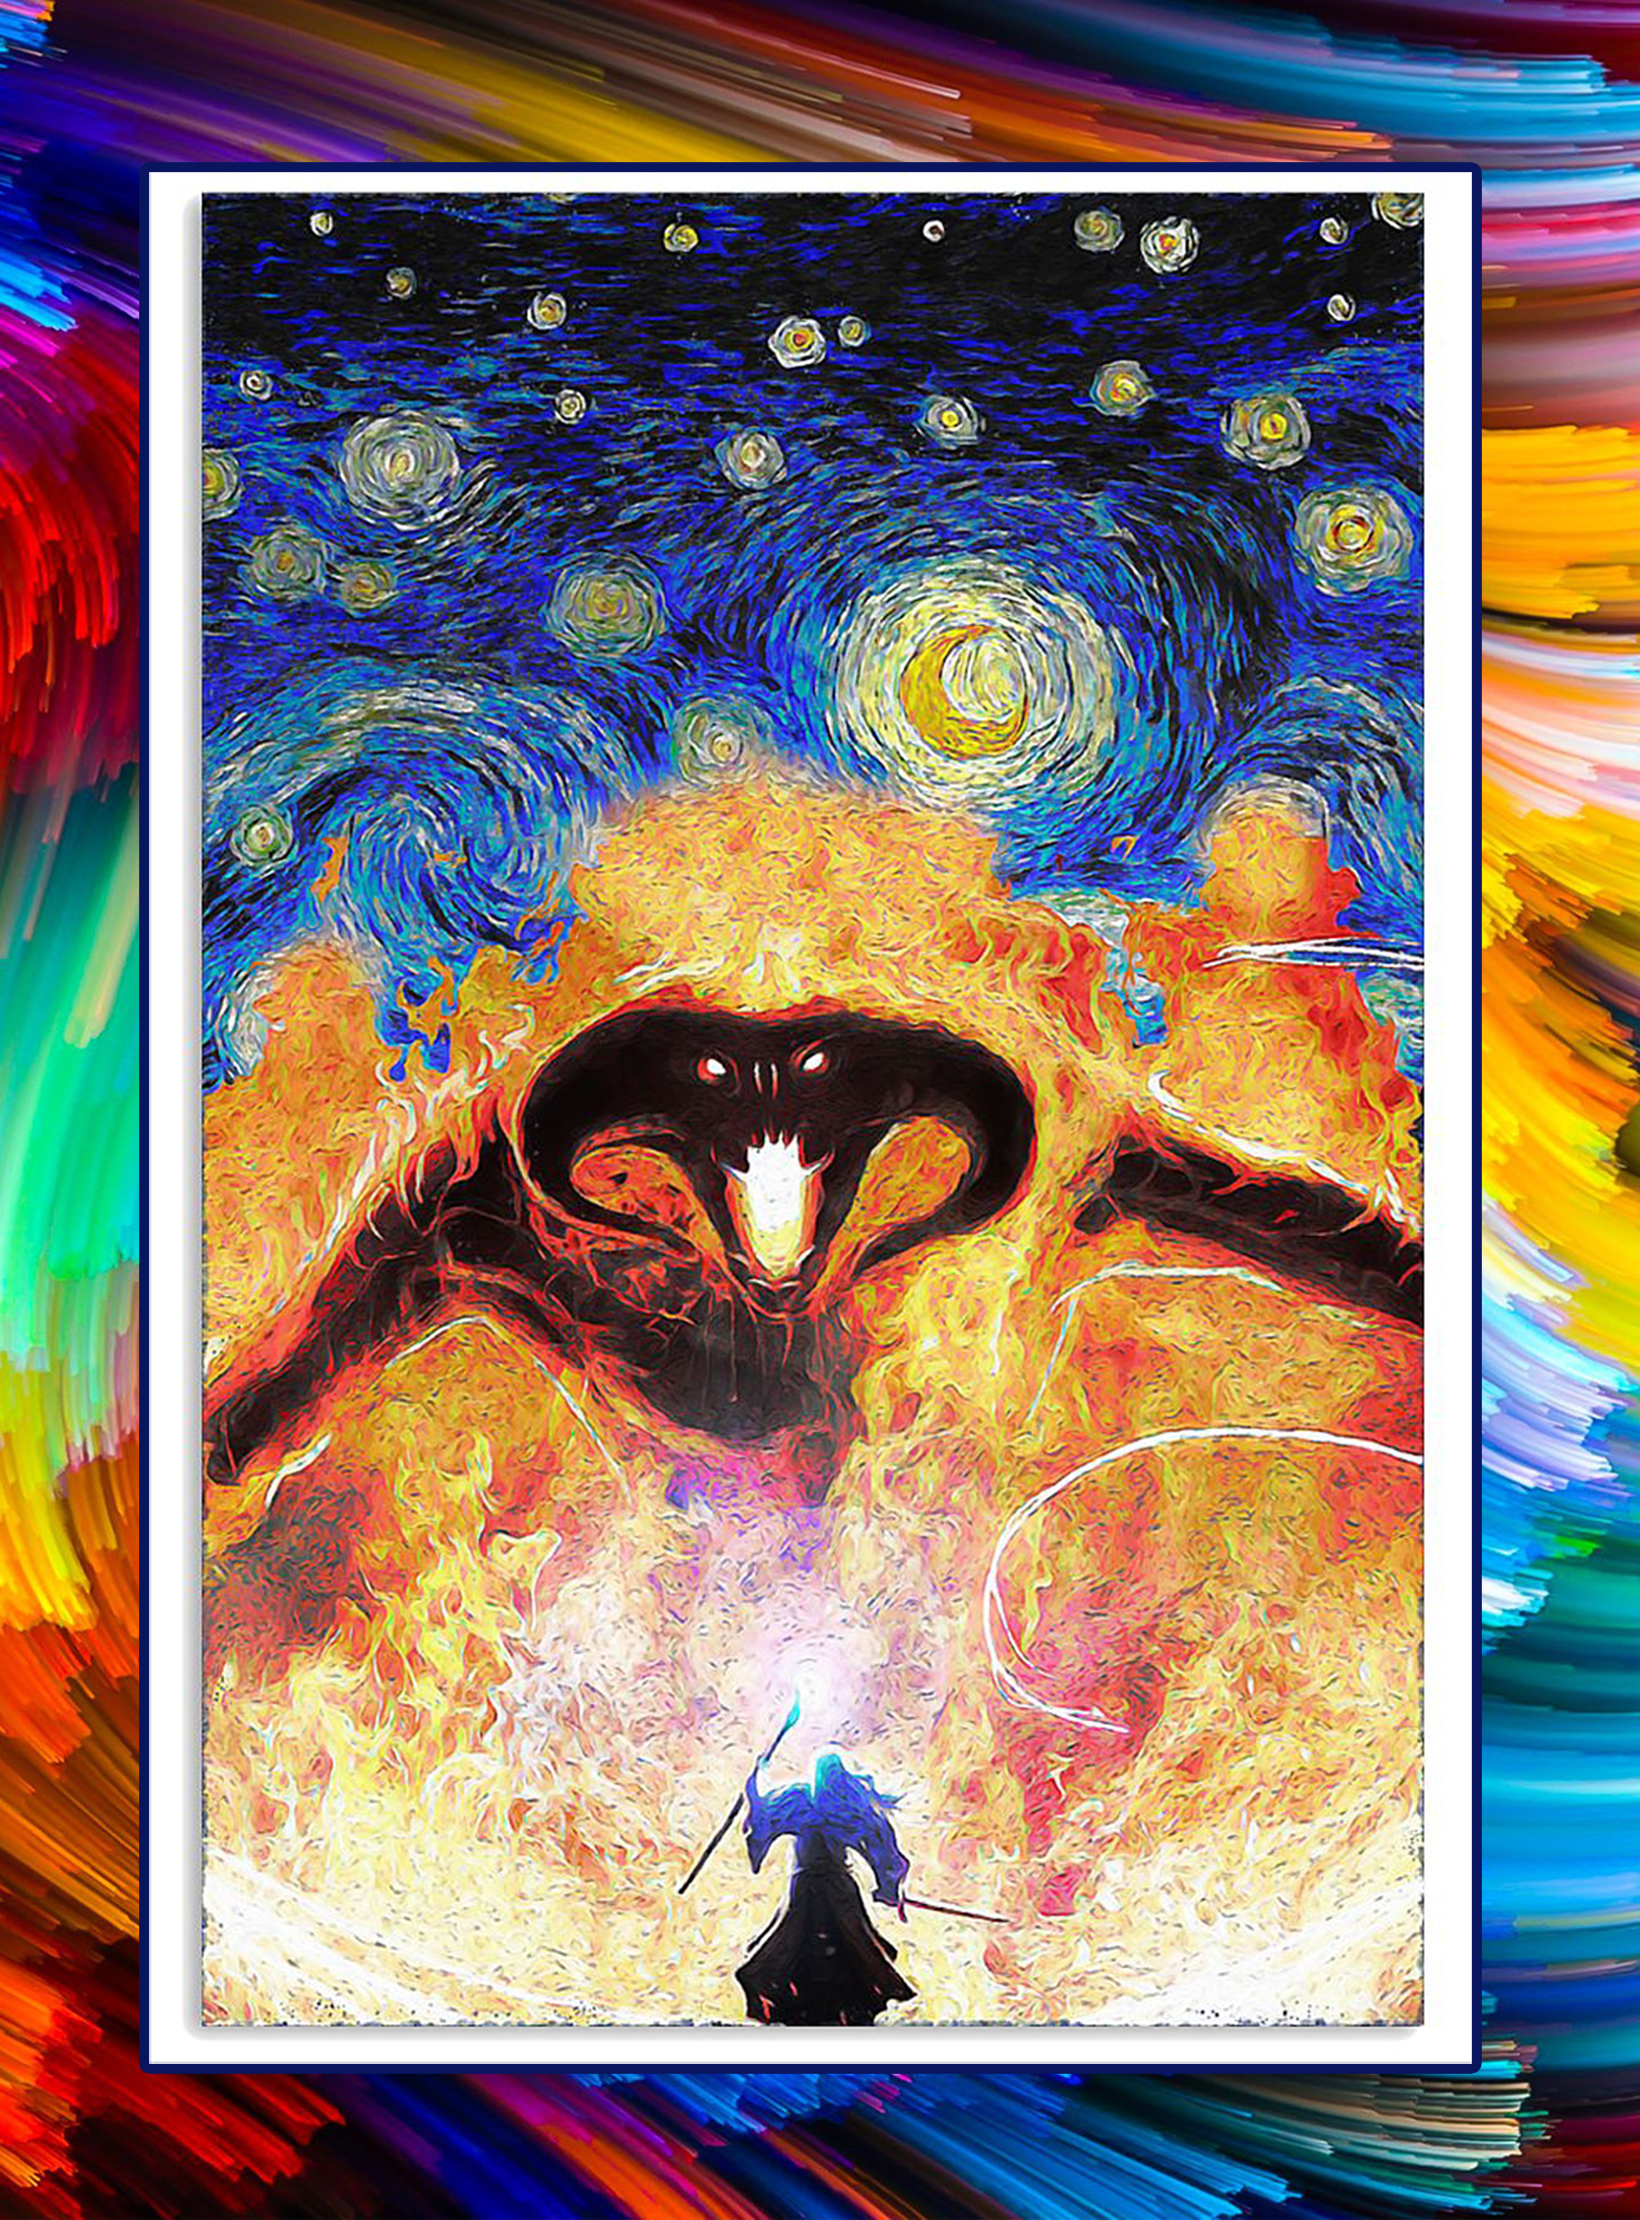 Balrog fire demon starry night poster - A2